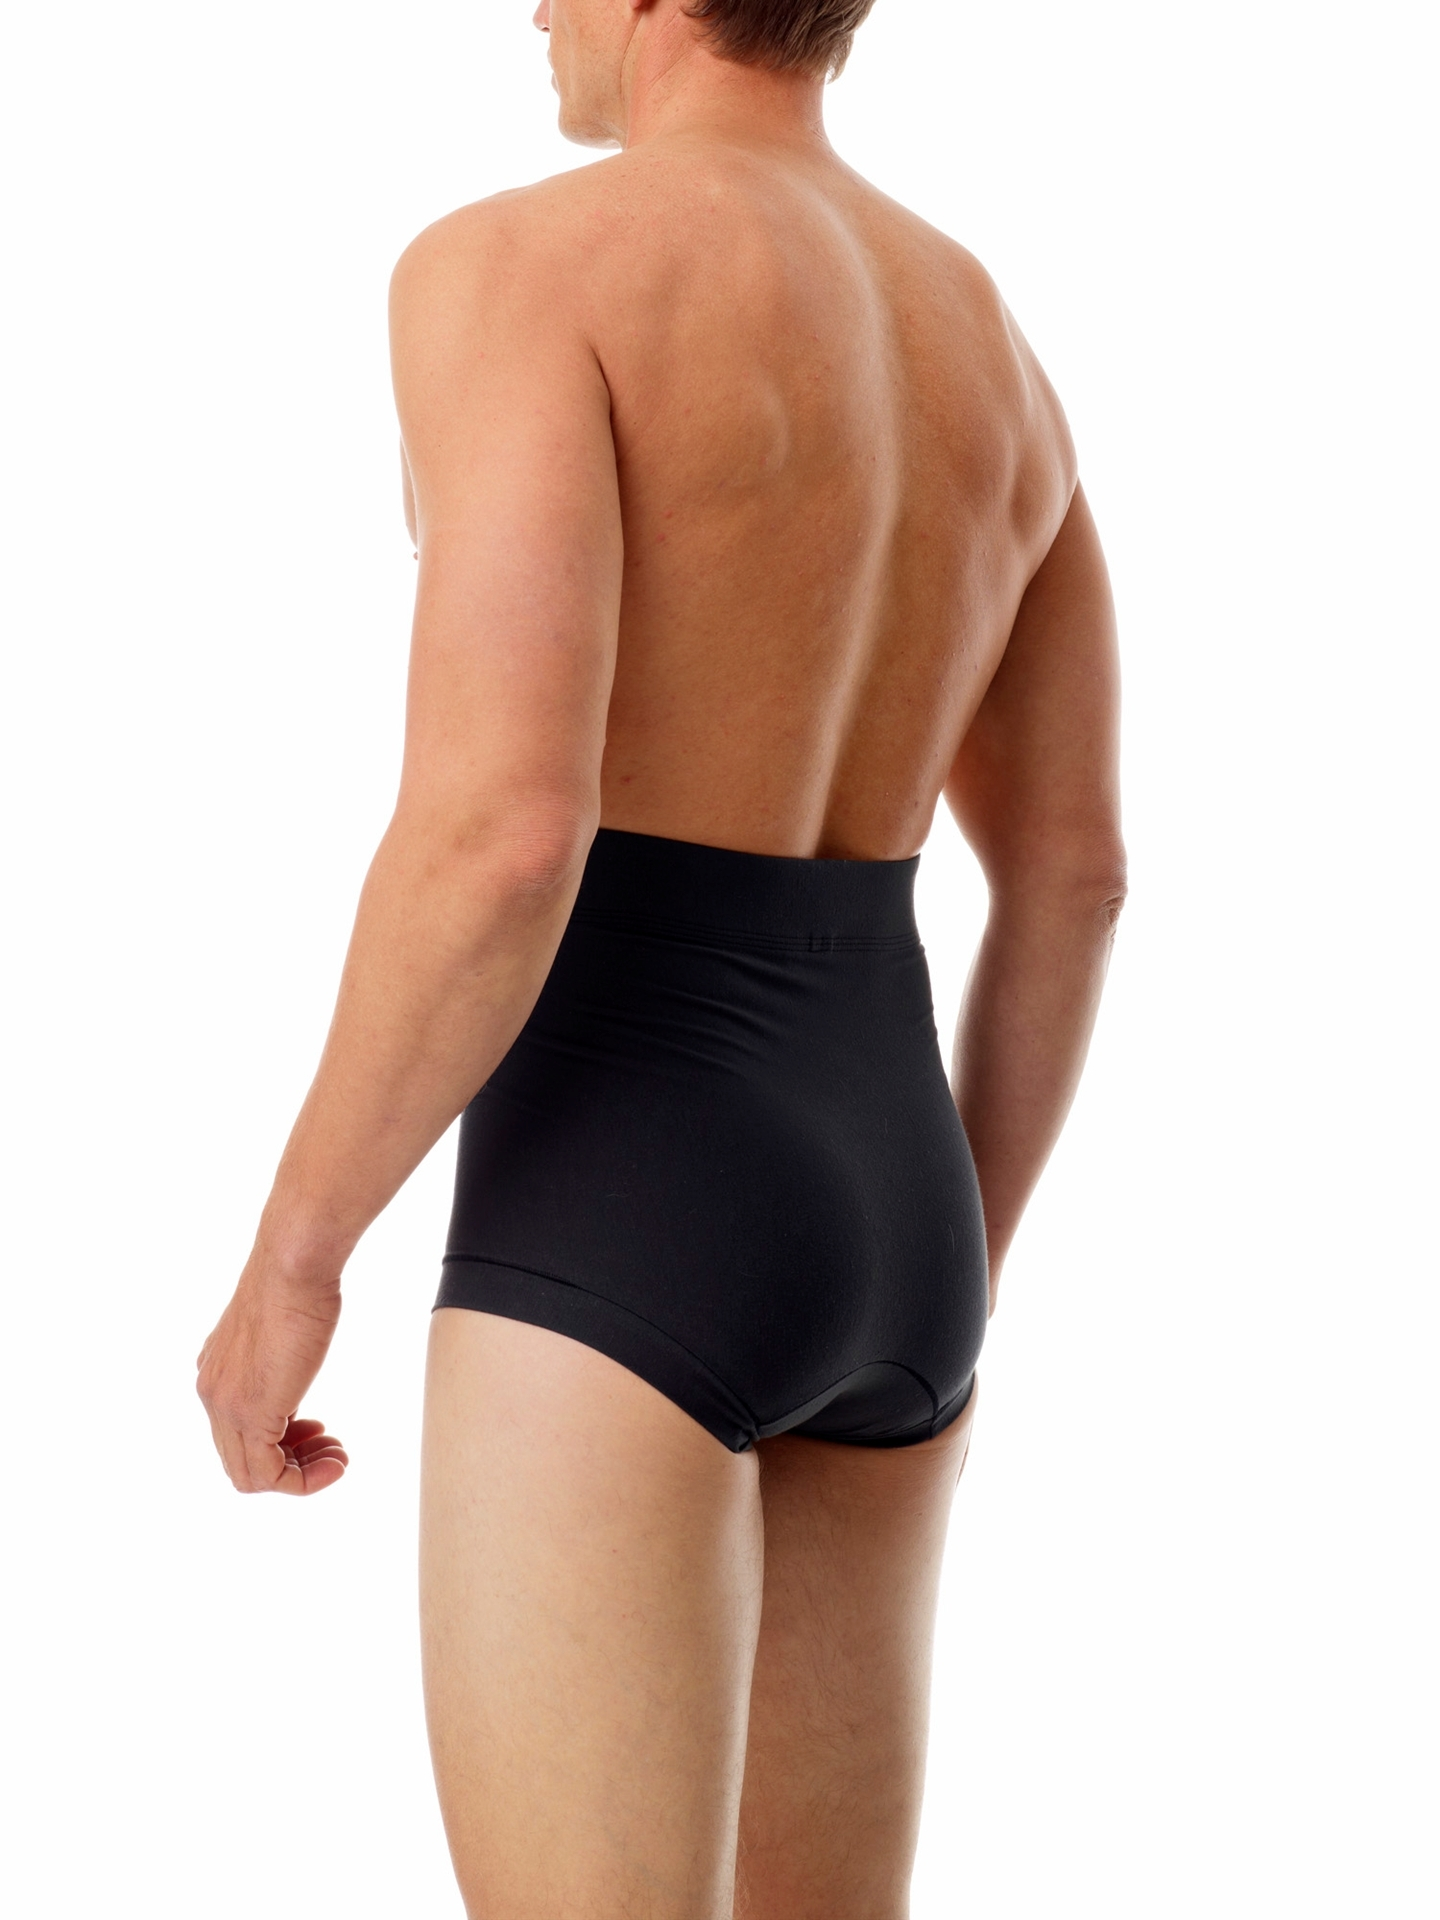 Picture of Manshape Hi-Rise Cotton Spandex Support & Shaping Underwear